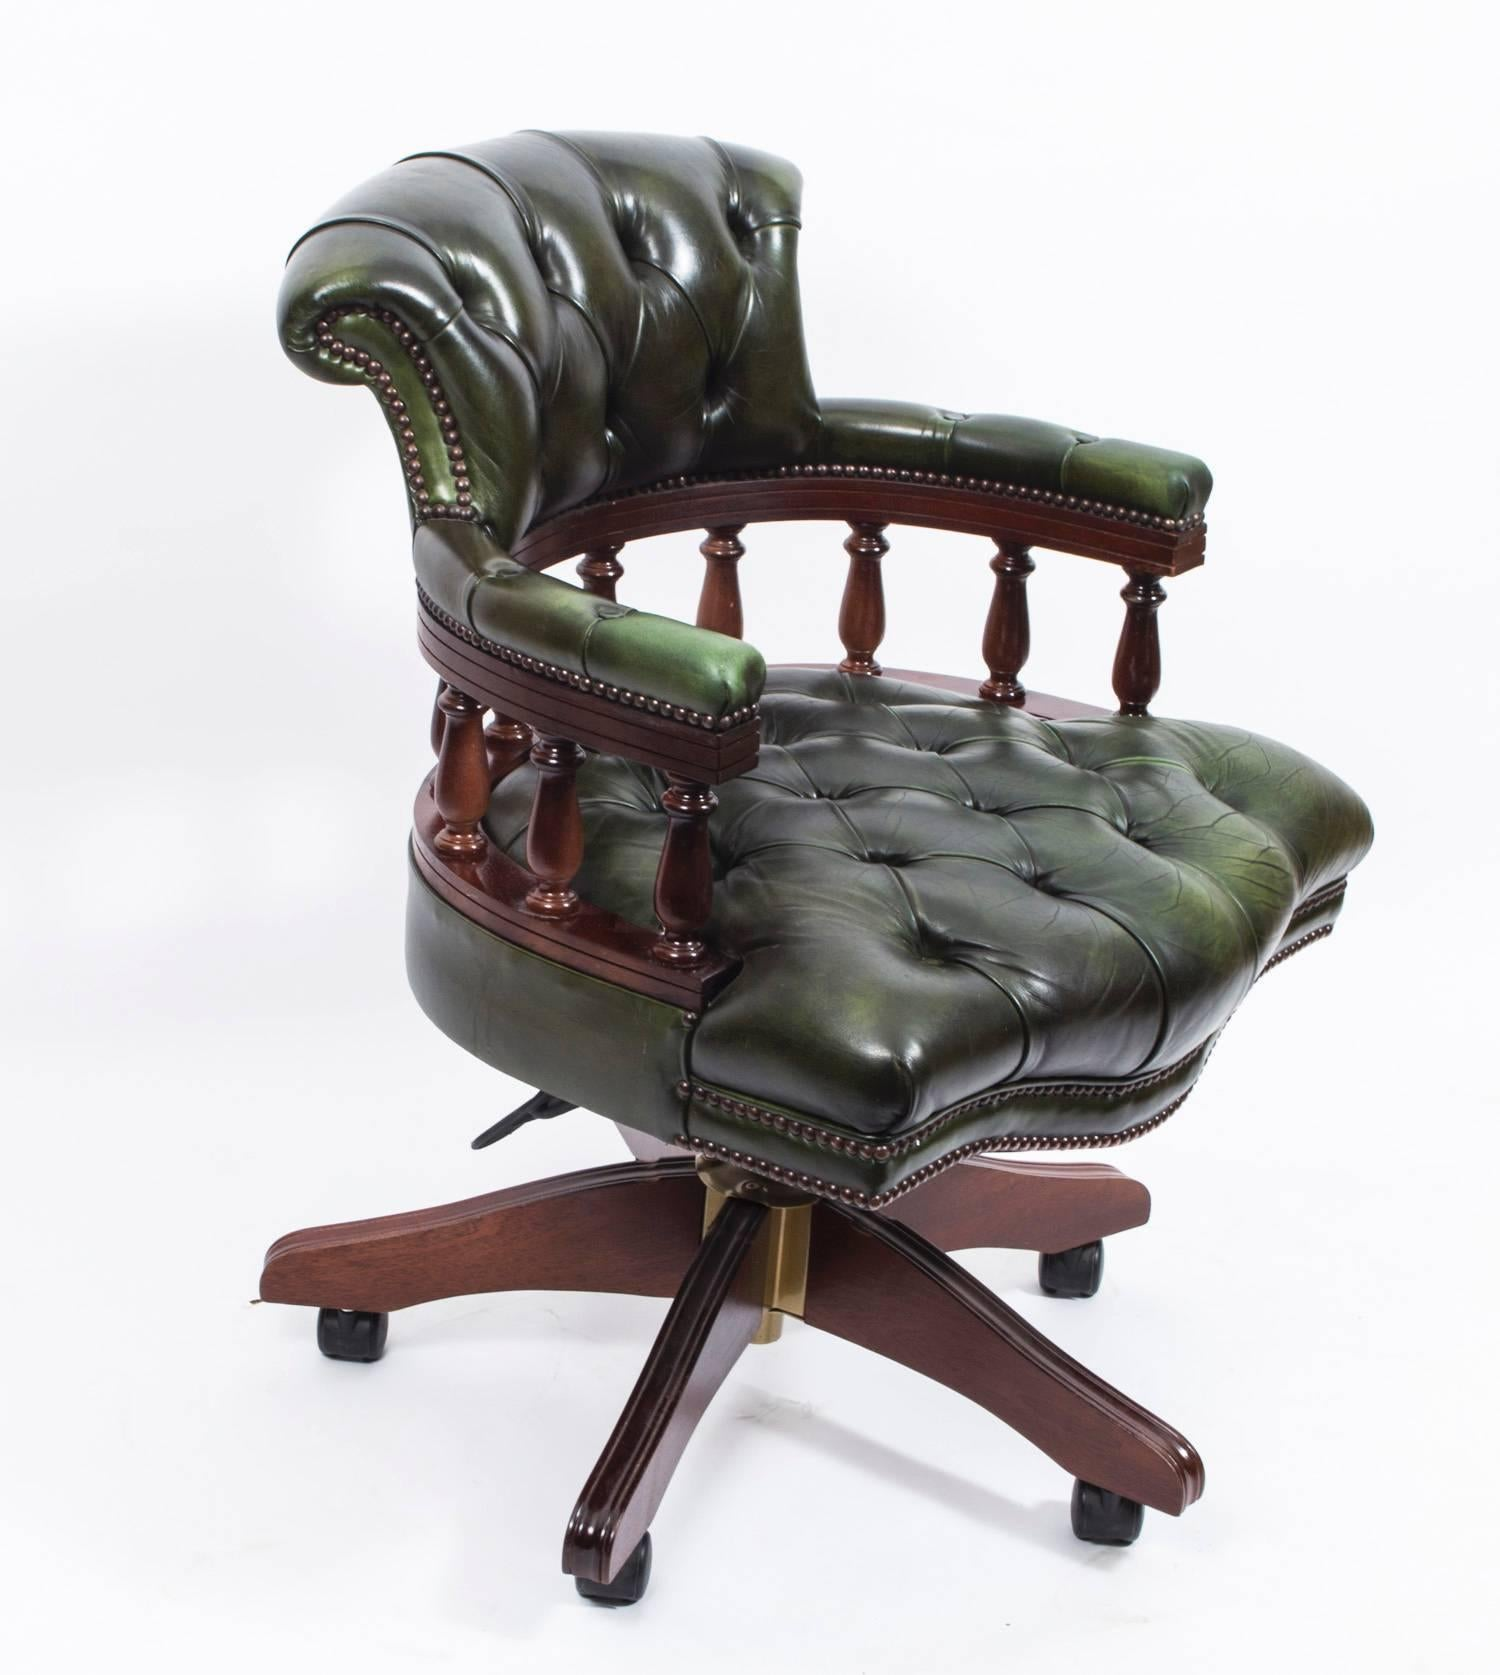 Pleasing Bespoke English Hand Made Leather Captains Desk Chair Green Uwap Interior Chair Design Uwaporg